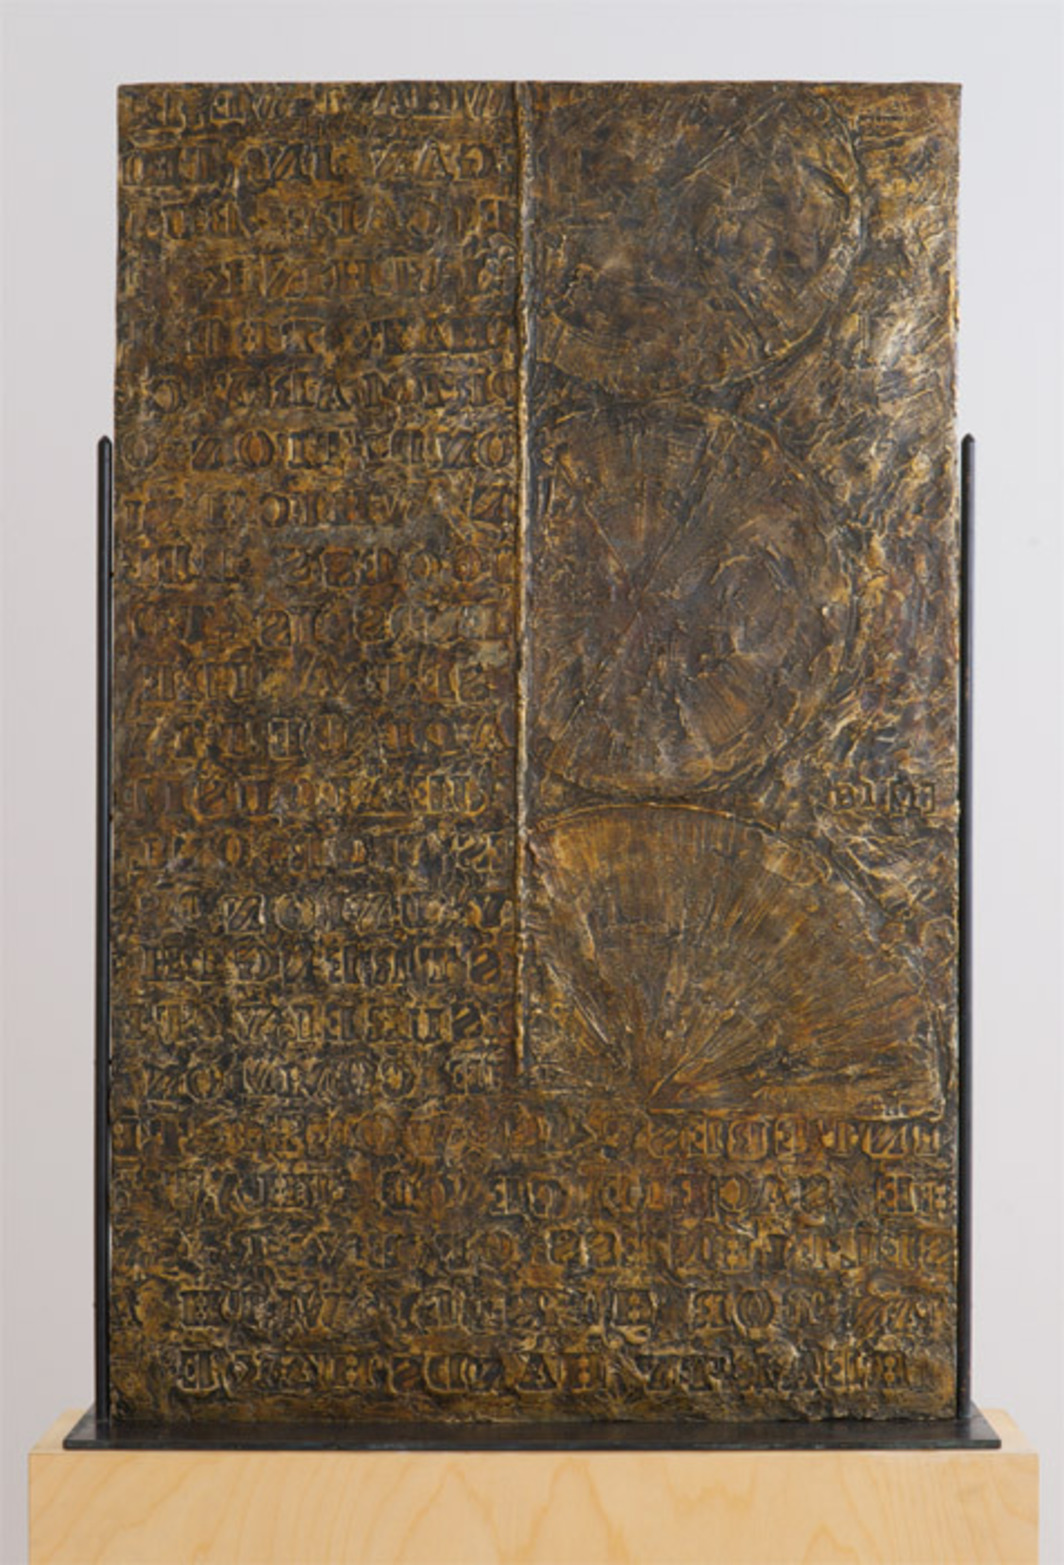 "Jasper Johns, Fragment of a Letter, 2009, bronze, 38 5/8 x 24 3/8 x 1/2""."